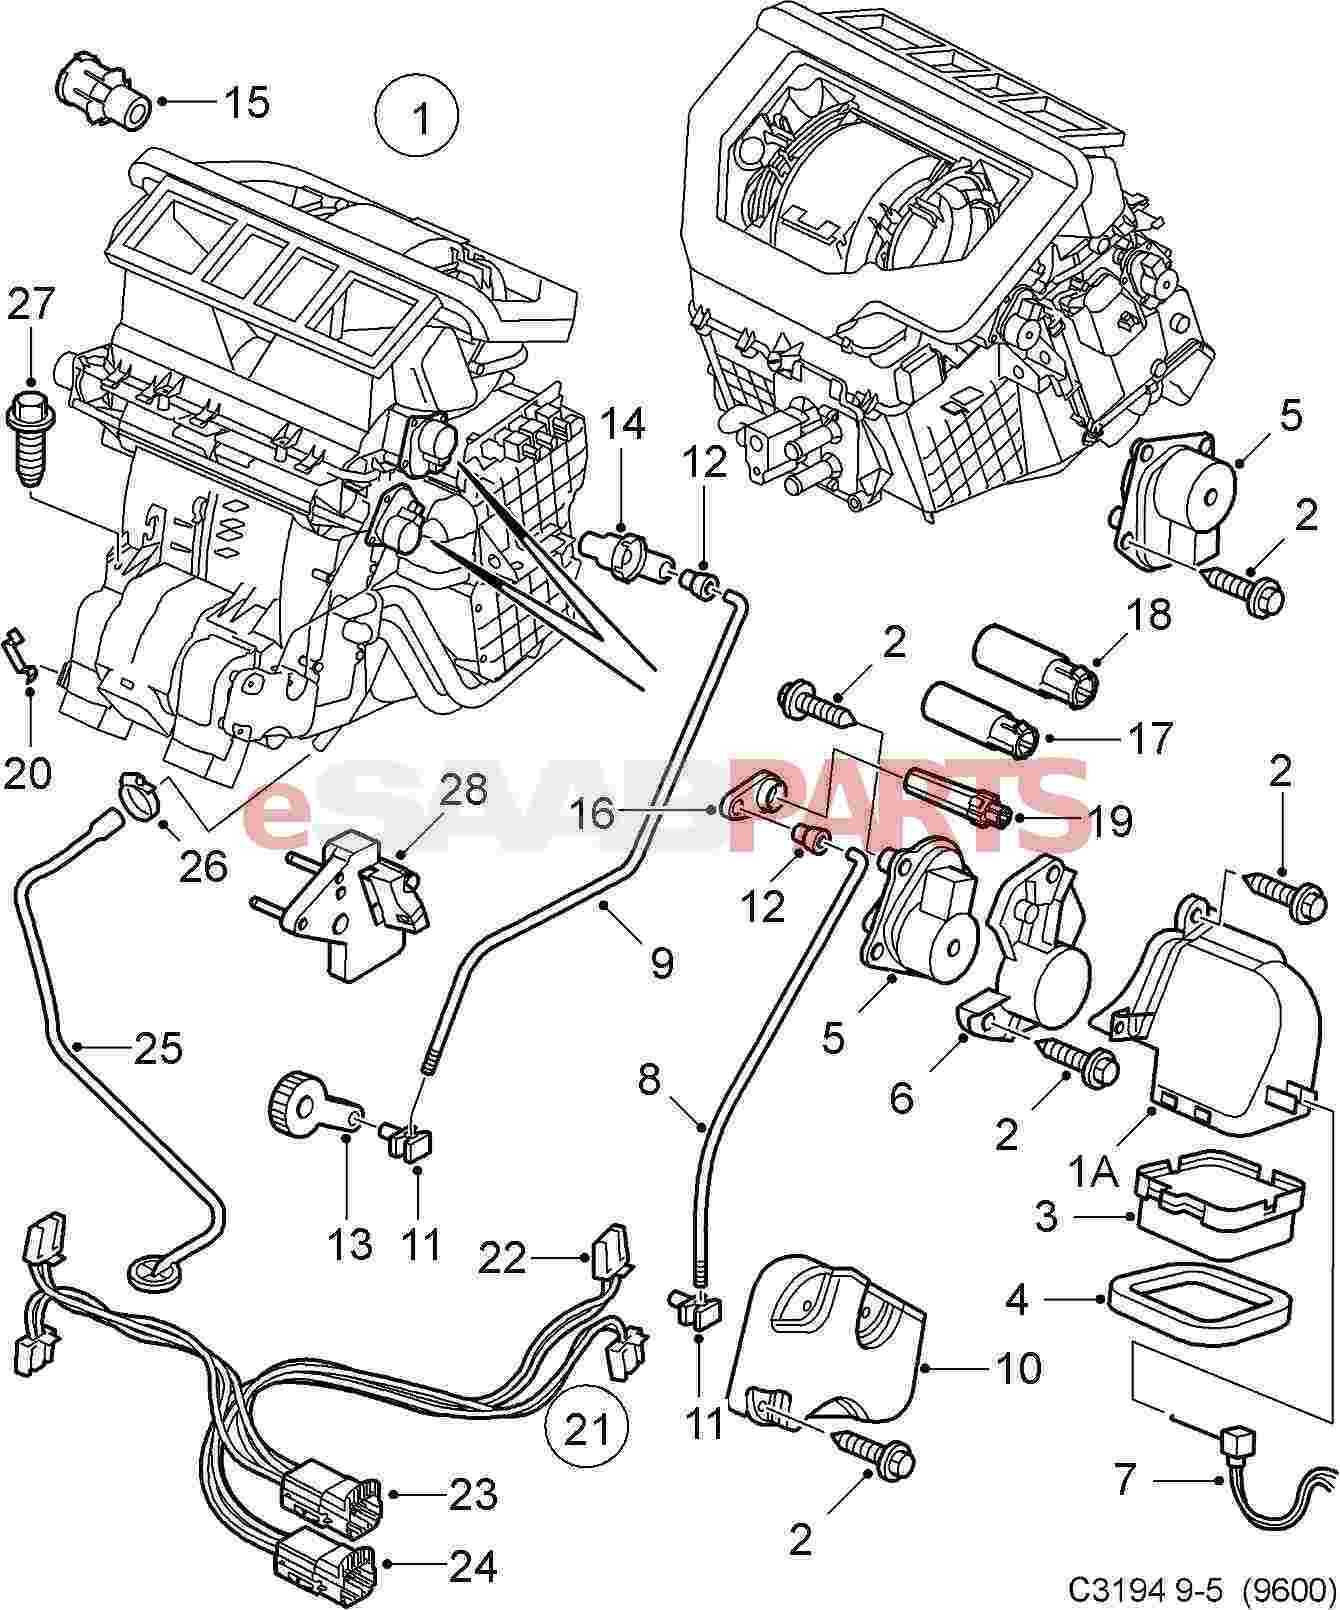 1999 saab 9 3 parts diagram